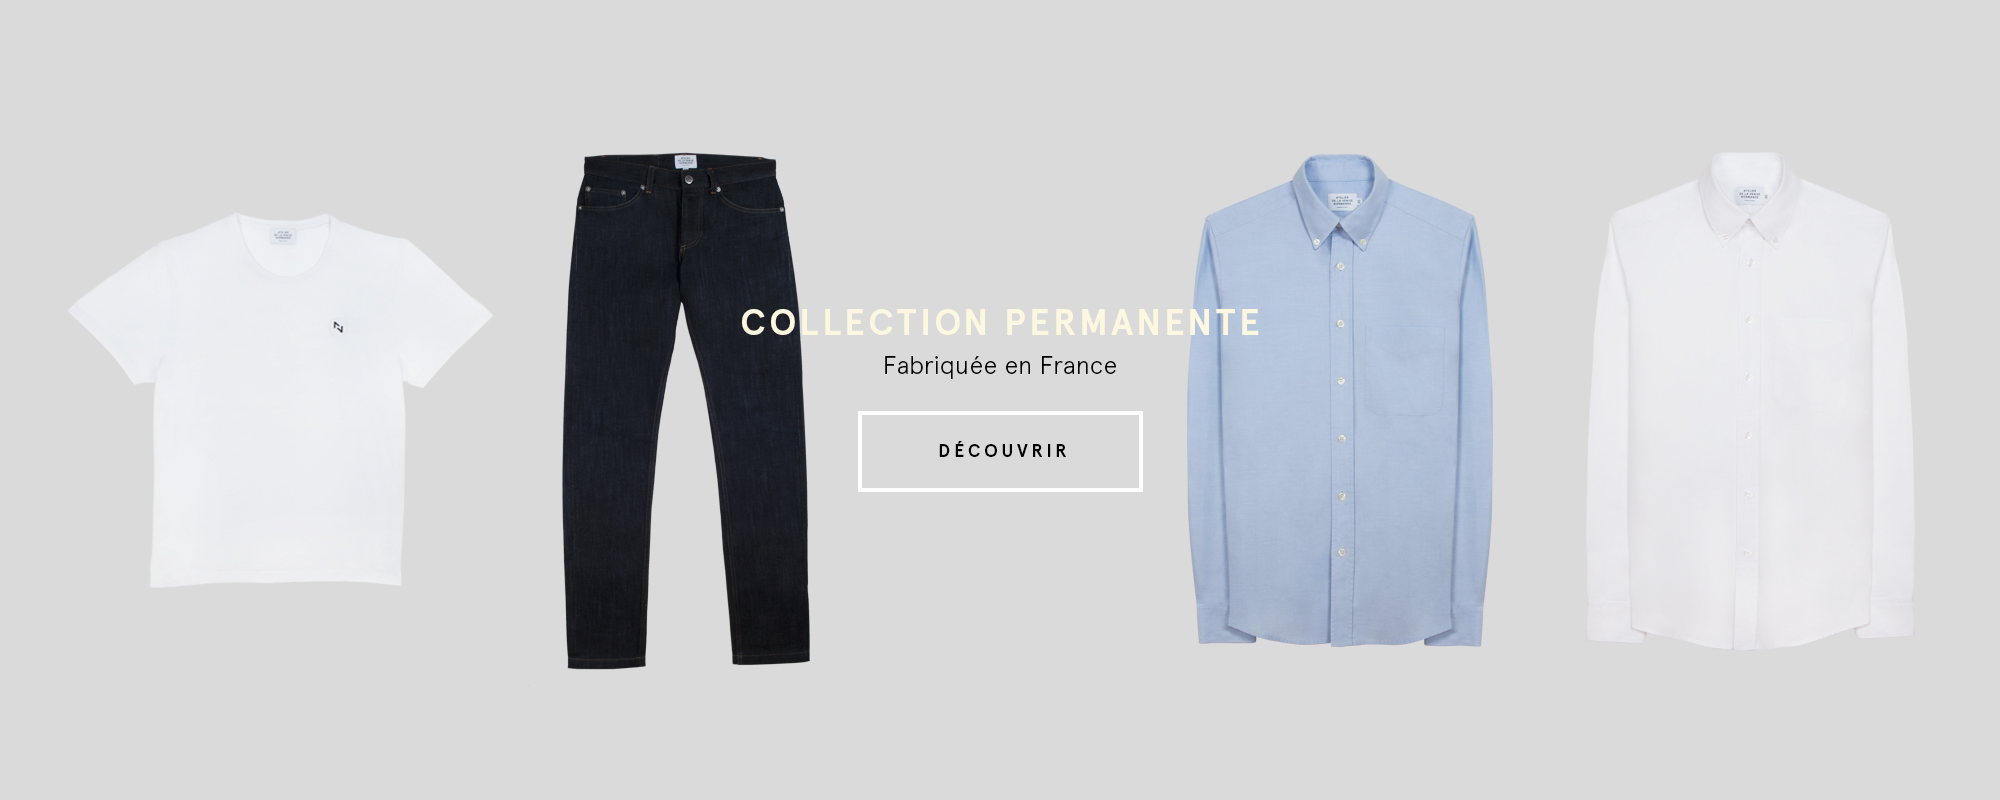 Collection avn madeinfrance